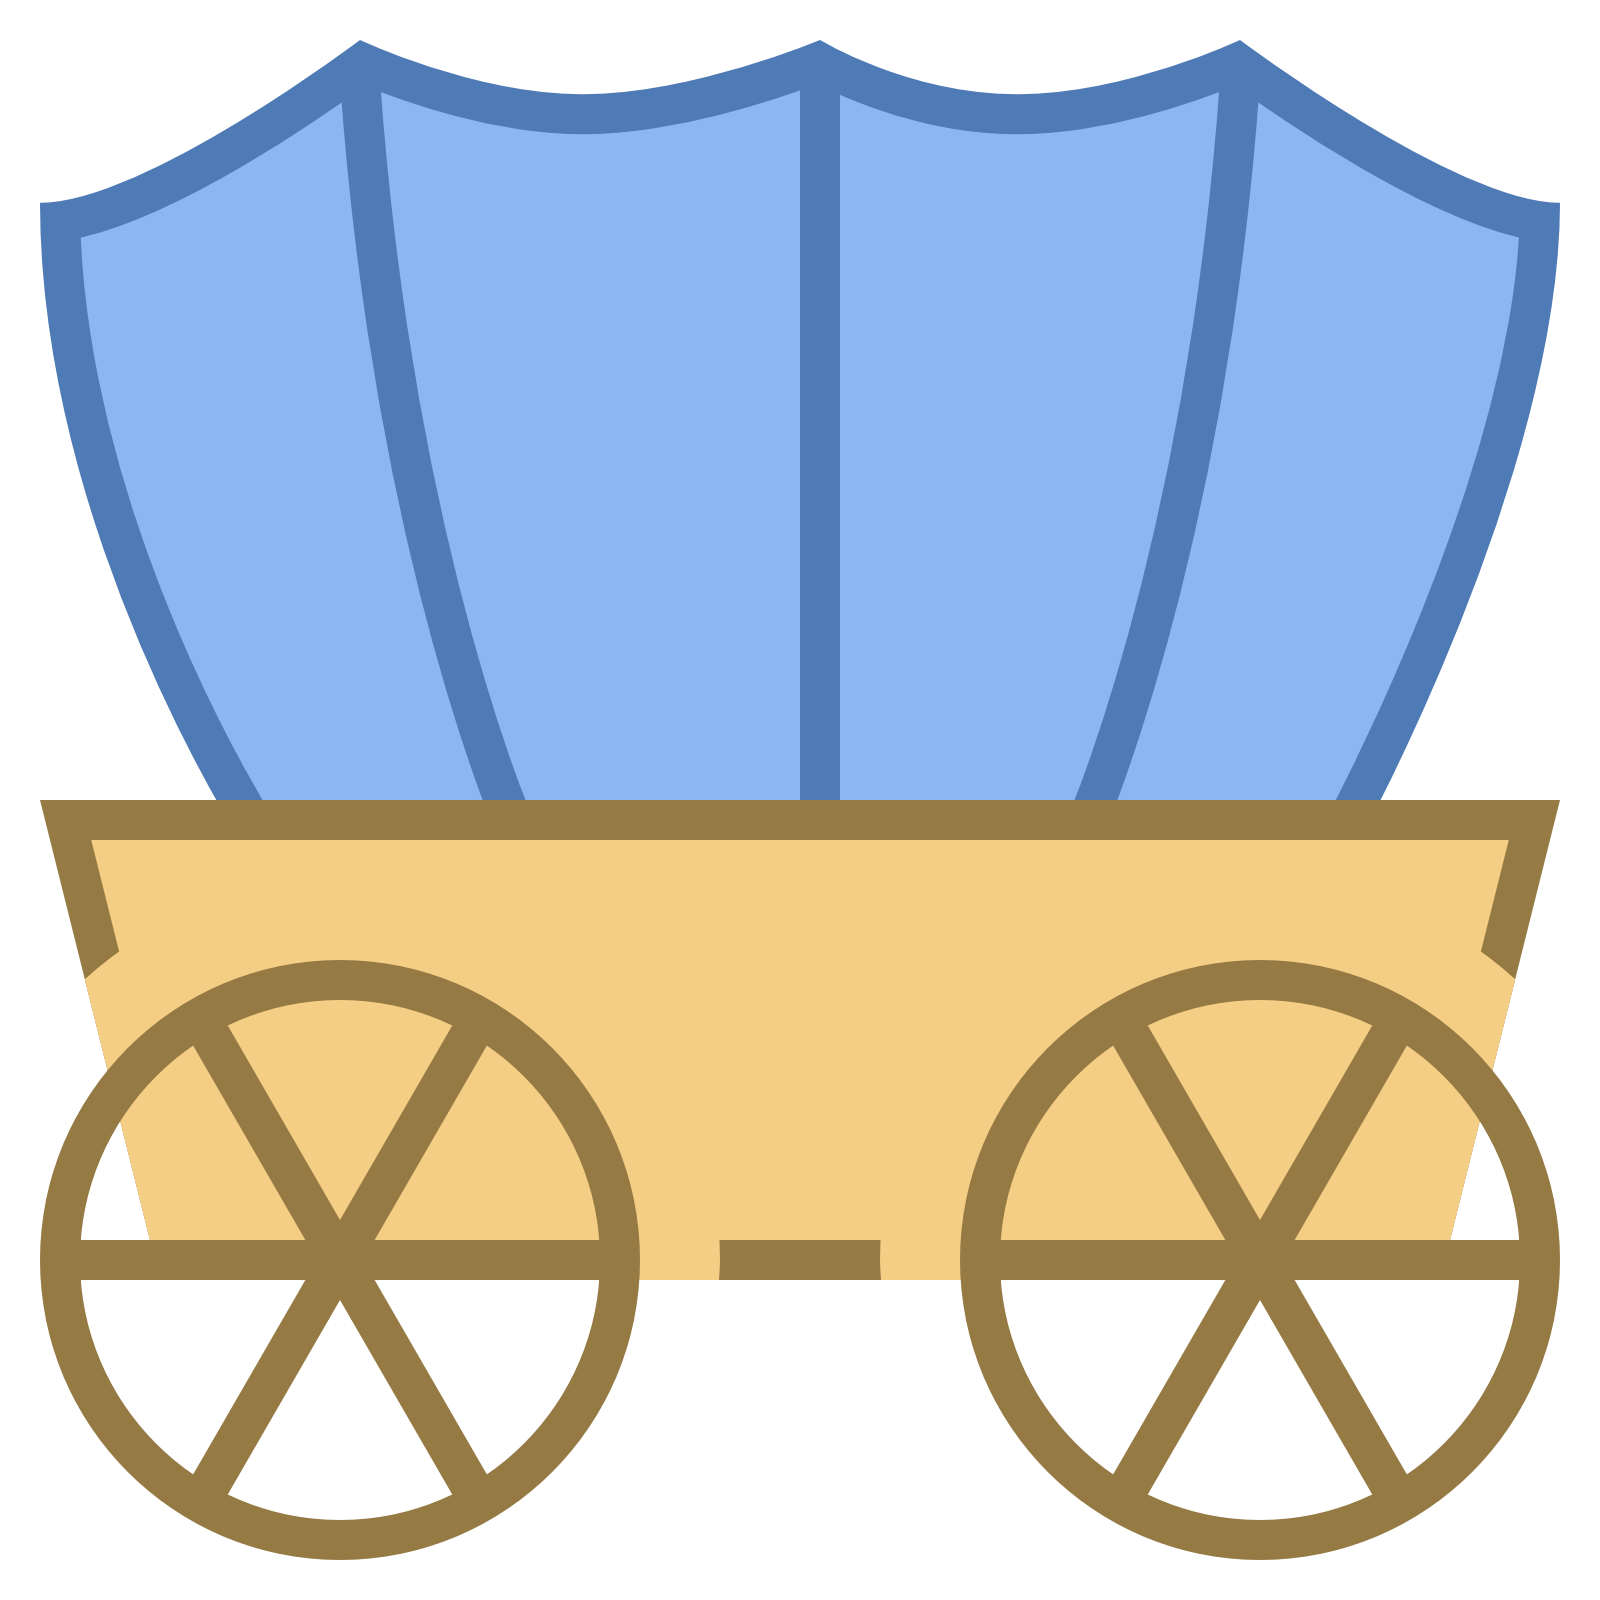 Cliparts free download best. Wagon clipart yellow